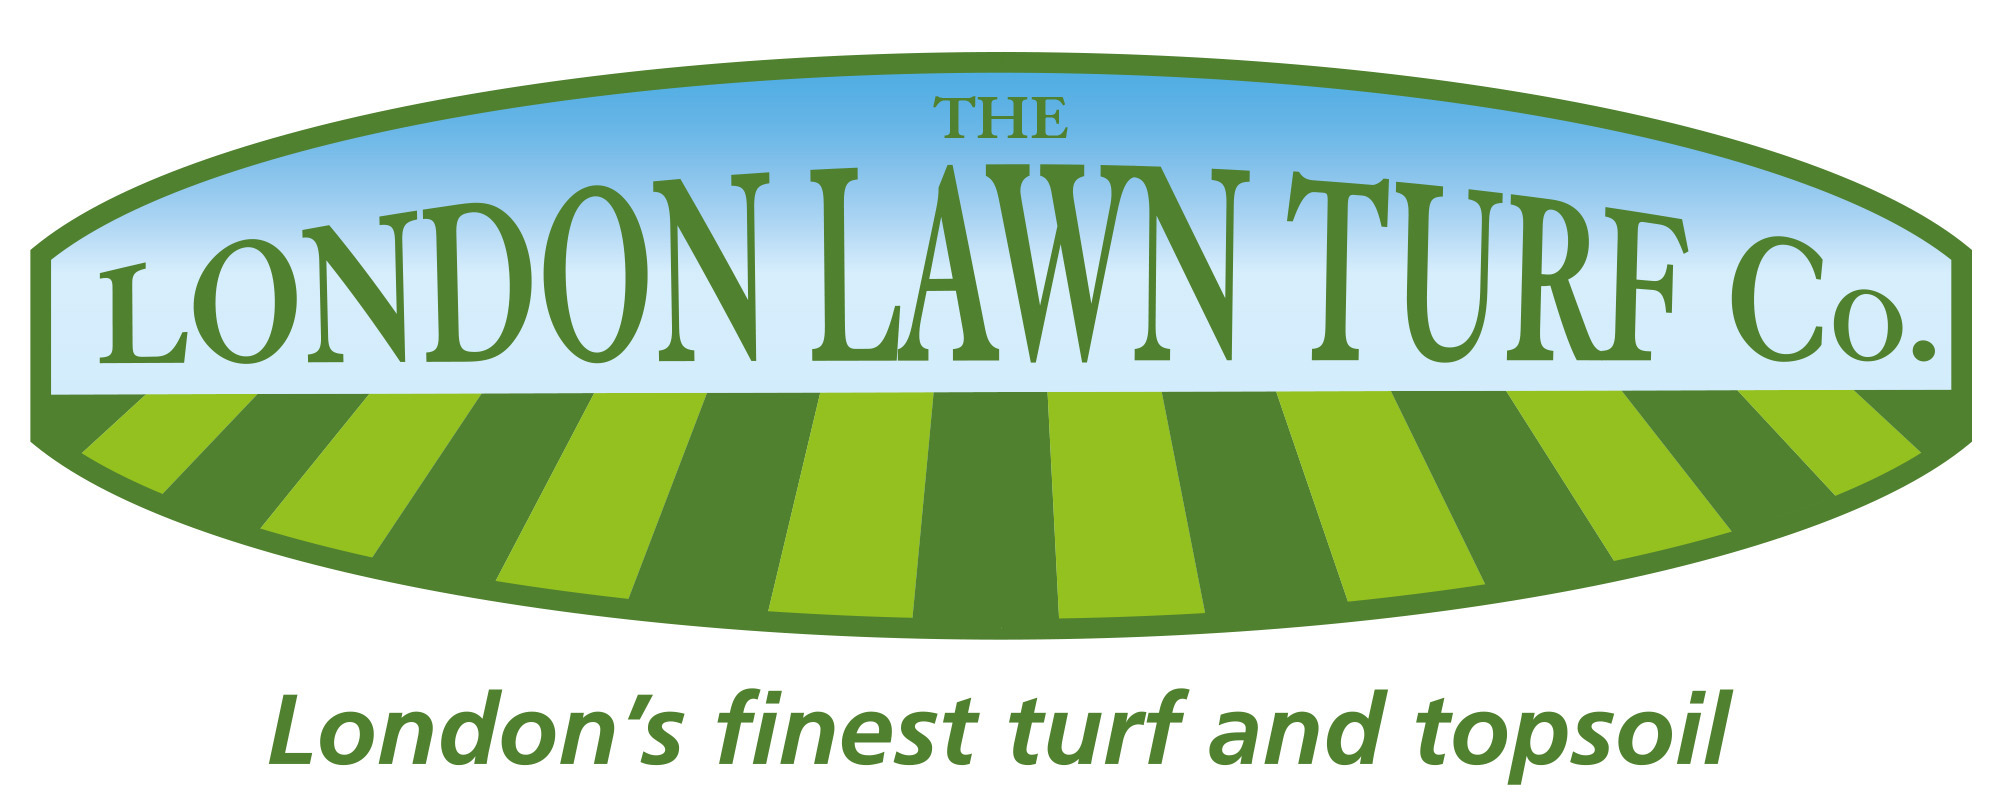 Read London Lawn Turf Company Reviews